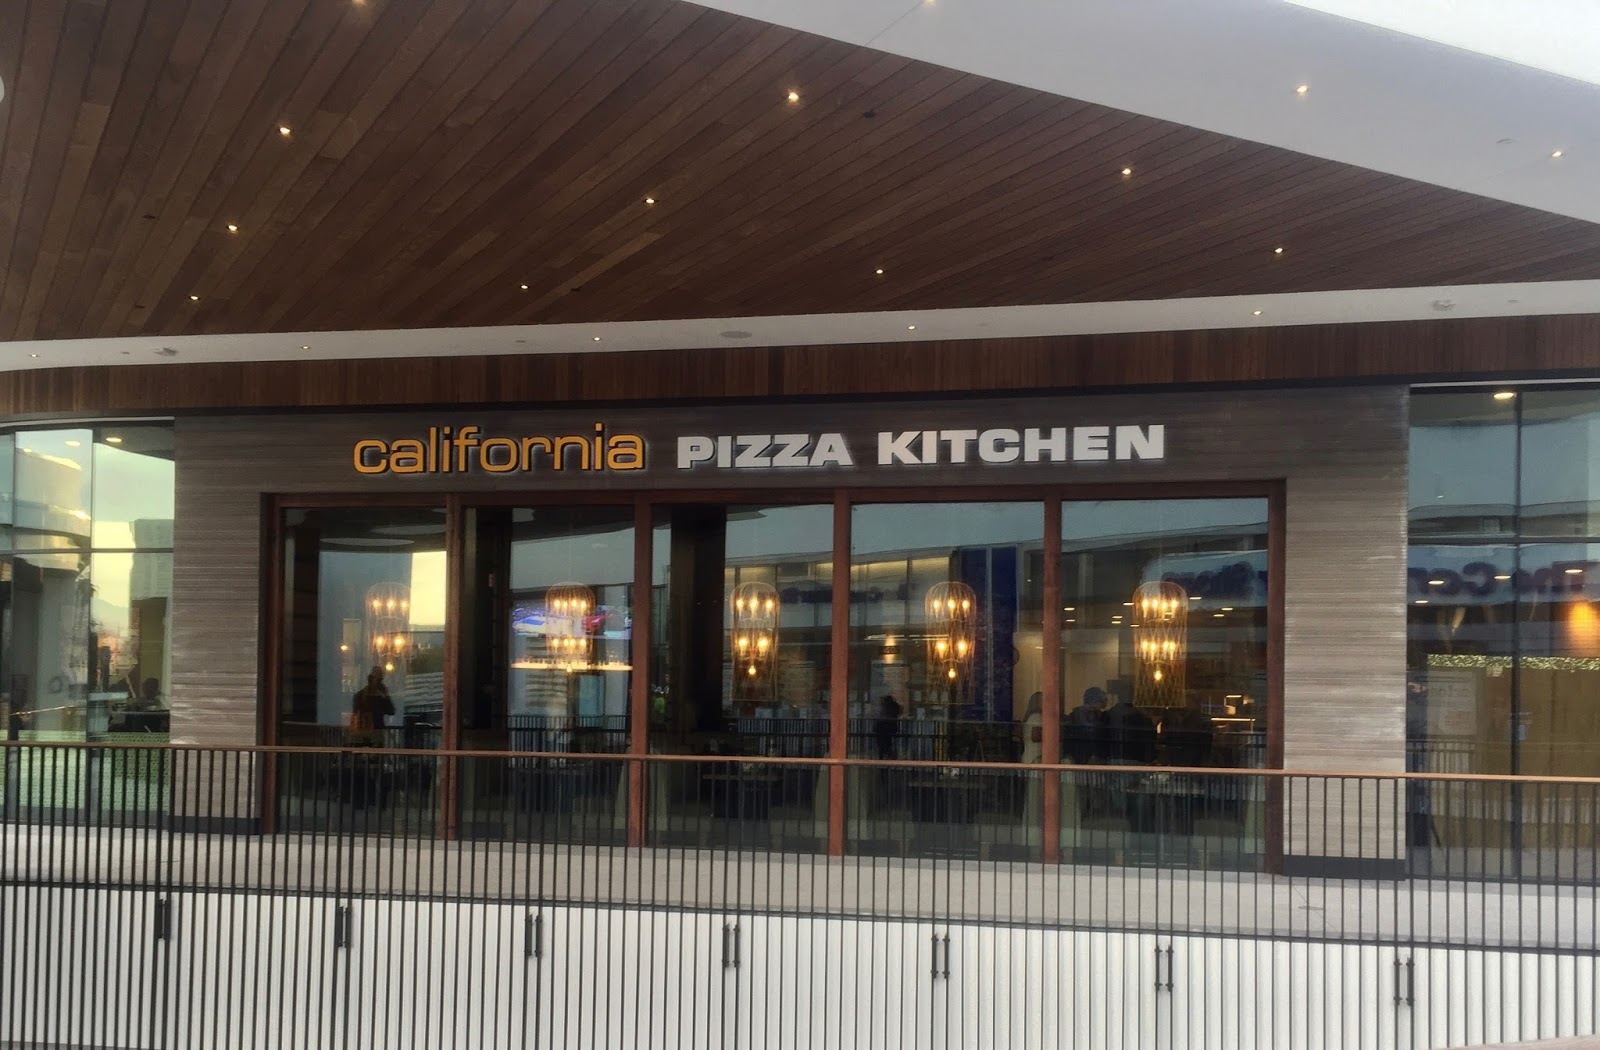 Jay Eats Worldwide: California Pizza Kitchen - A New Look & Menu in ...